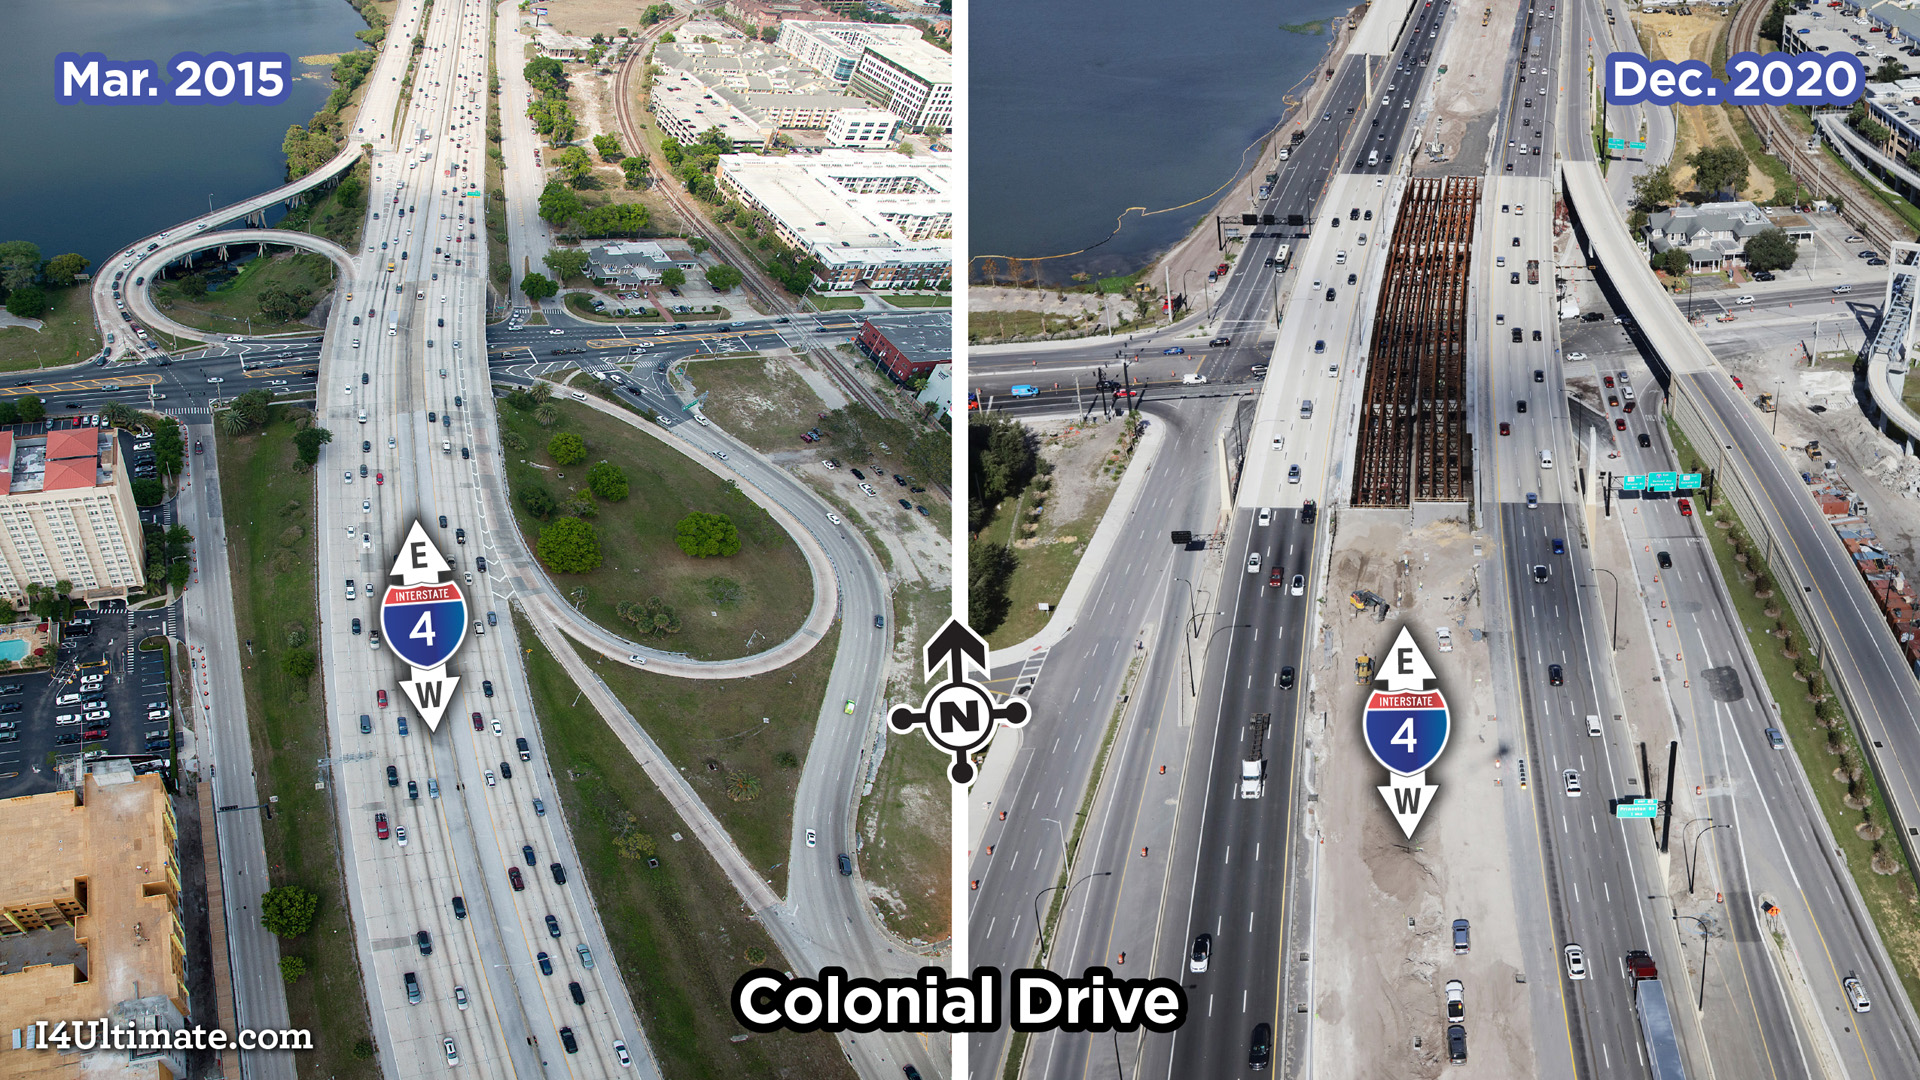 4738-I4Ultimate-GUL-campaign-images-20210212-11-Colonial-Drive